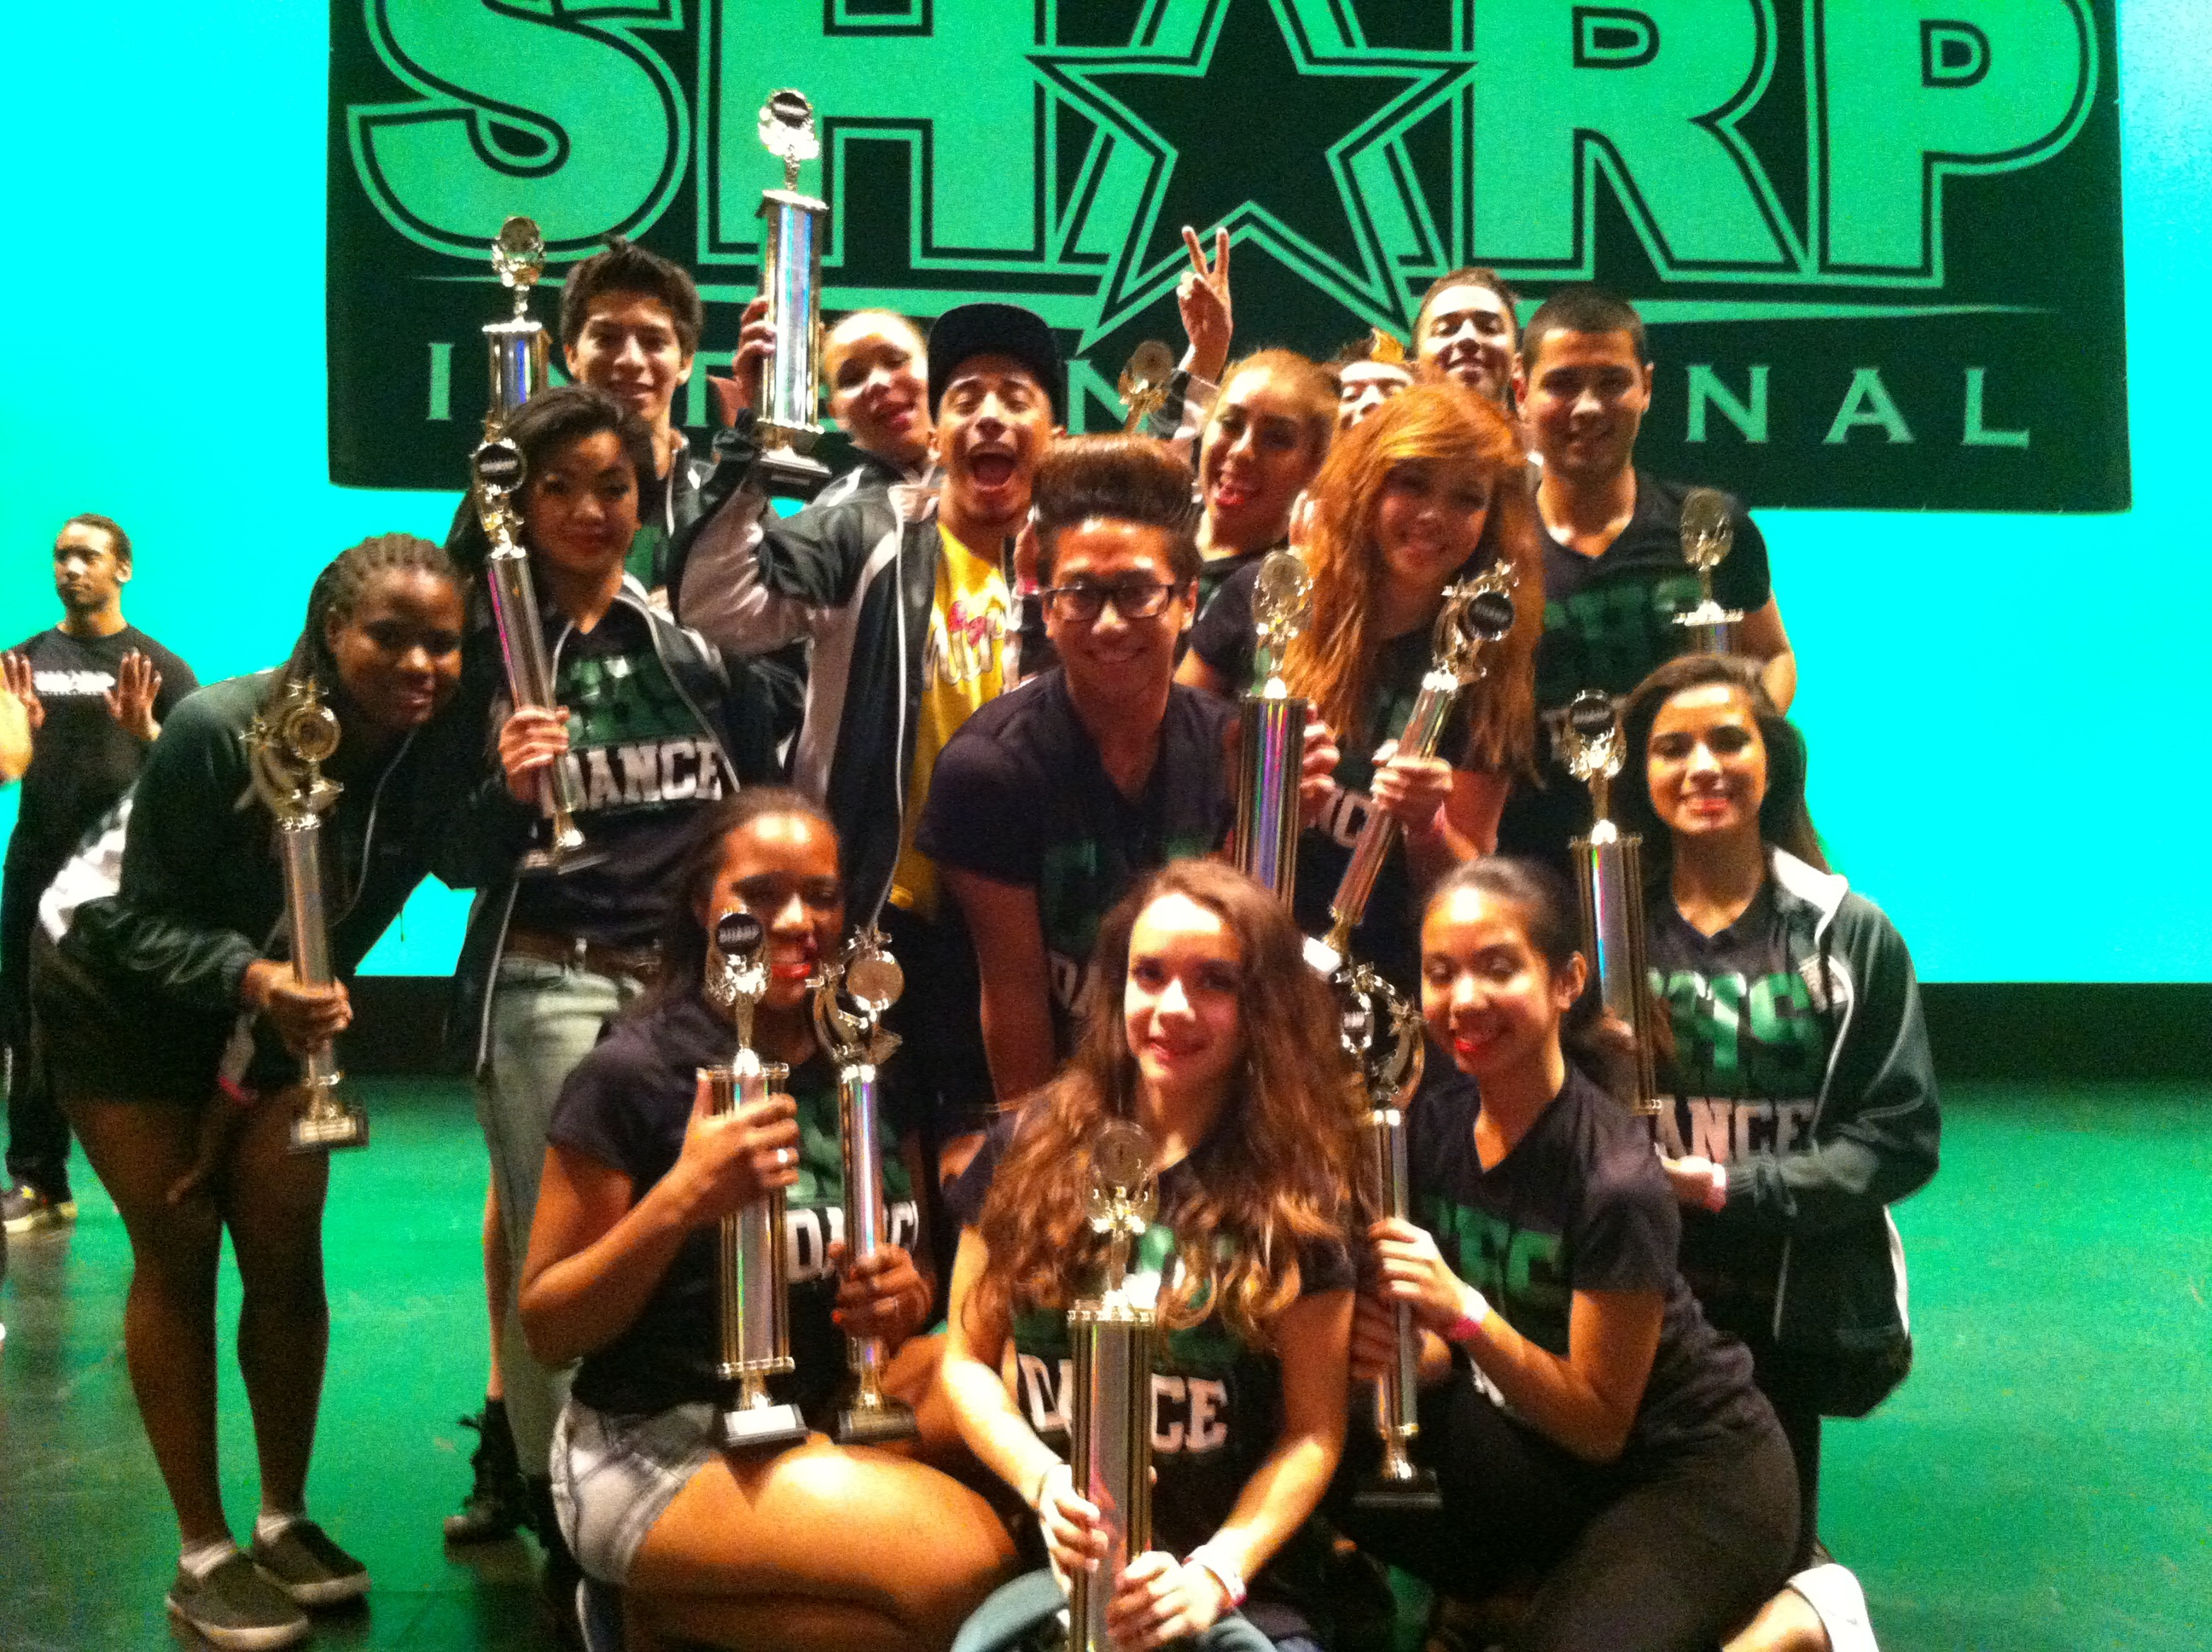 Dancers holding trophies